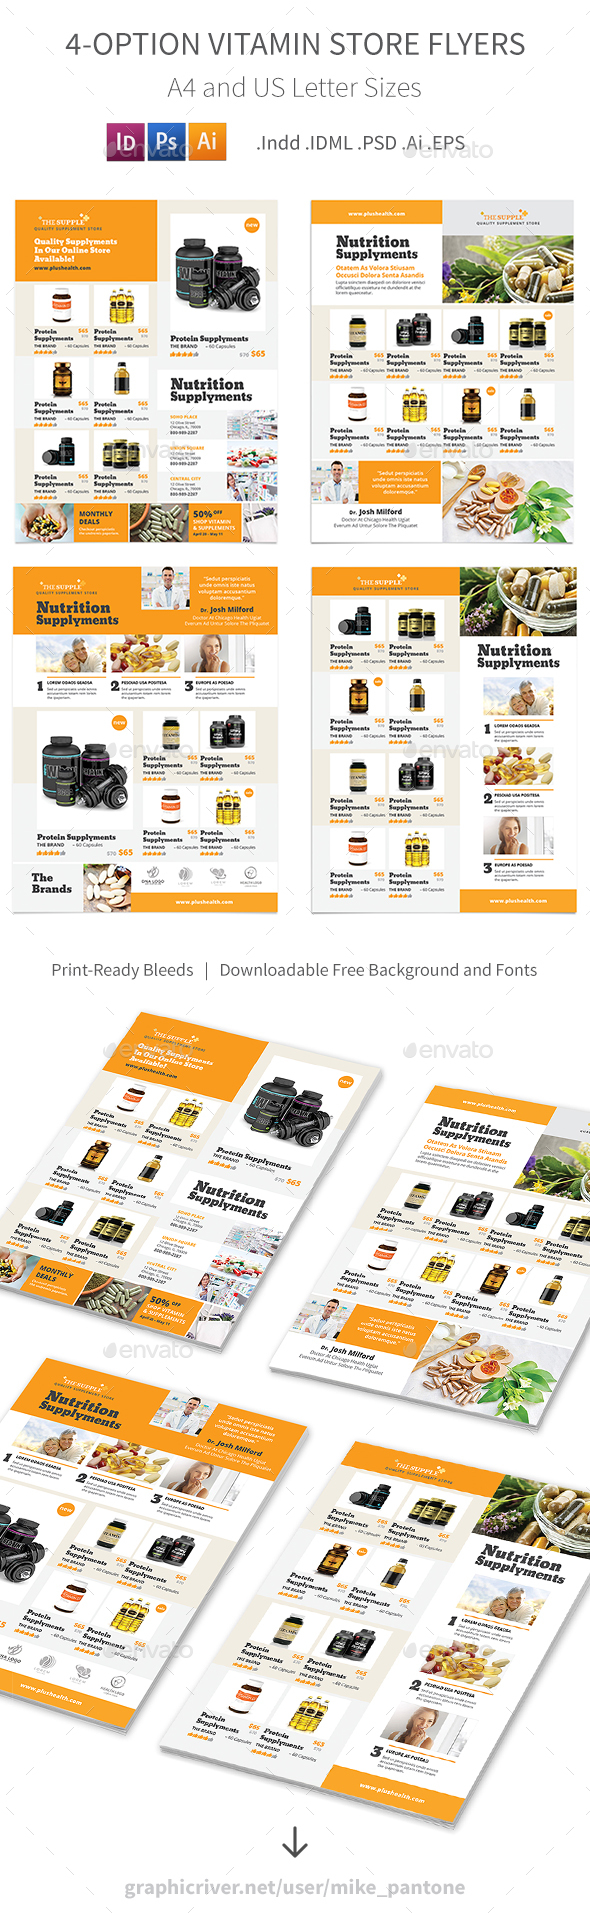 Vitamin Store Flyers – 4 Options - Commerce Flyers